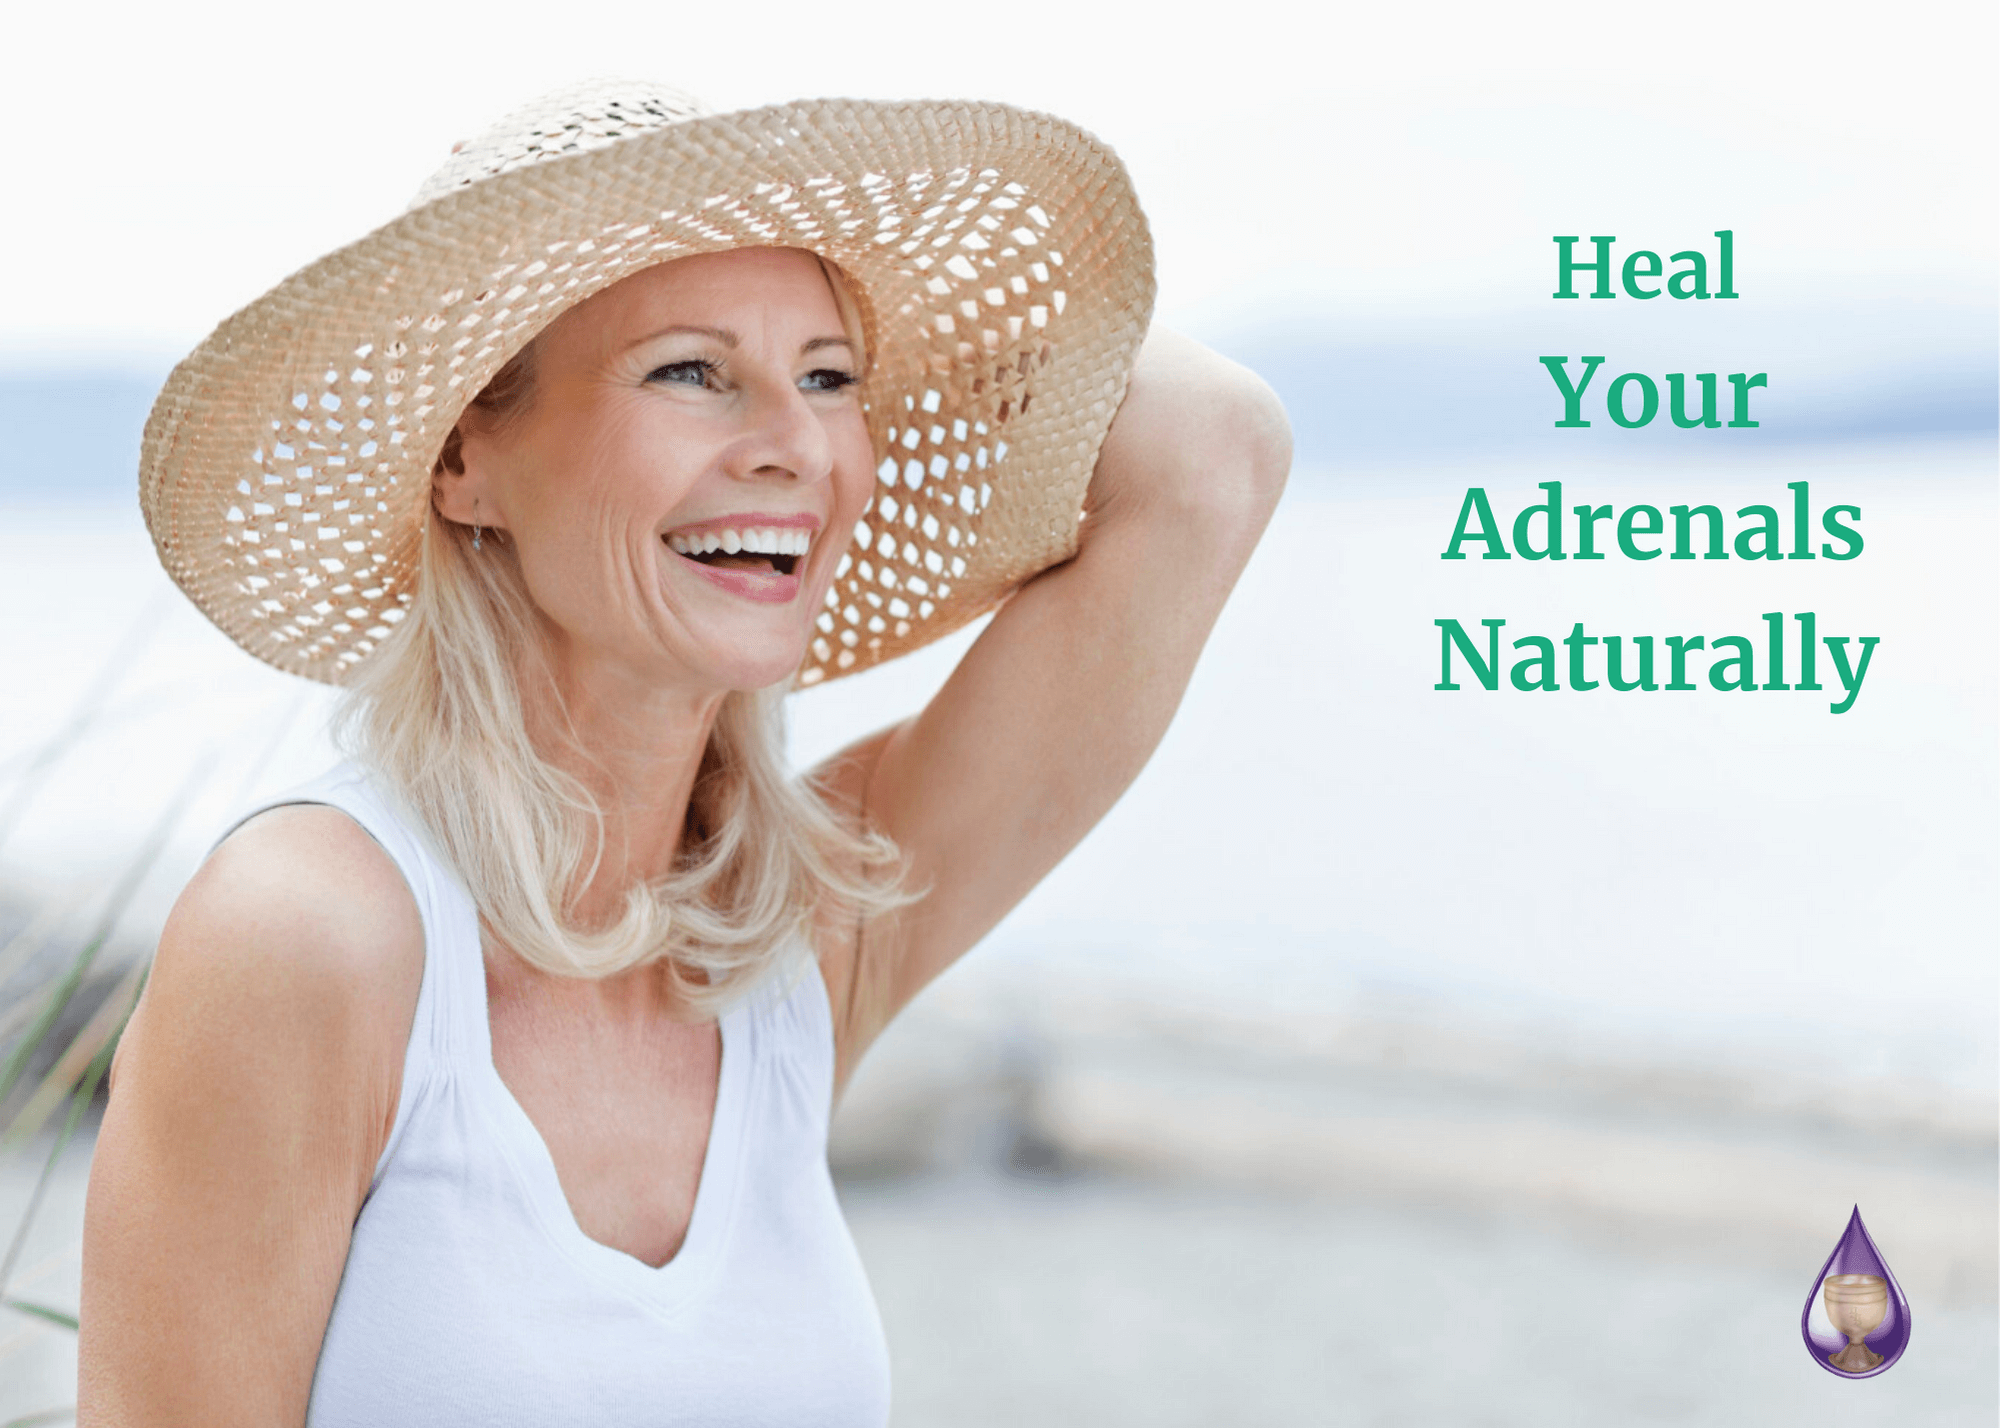 heal your adrenals naturally